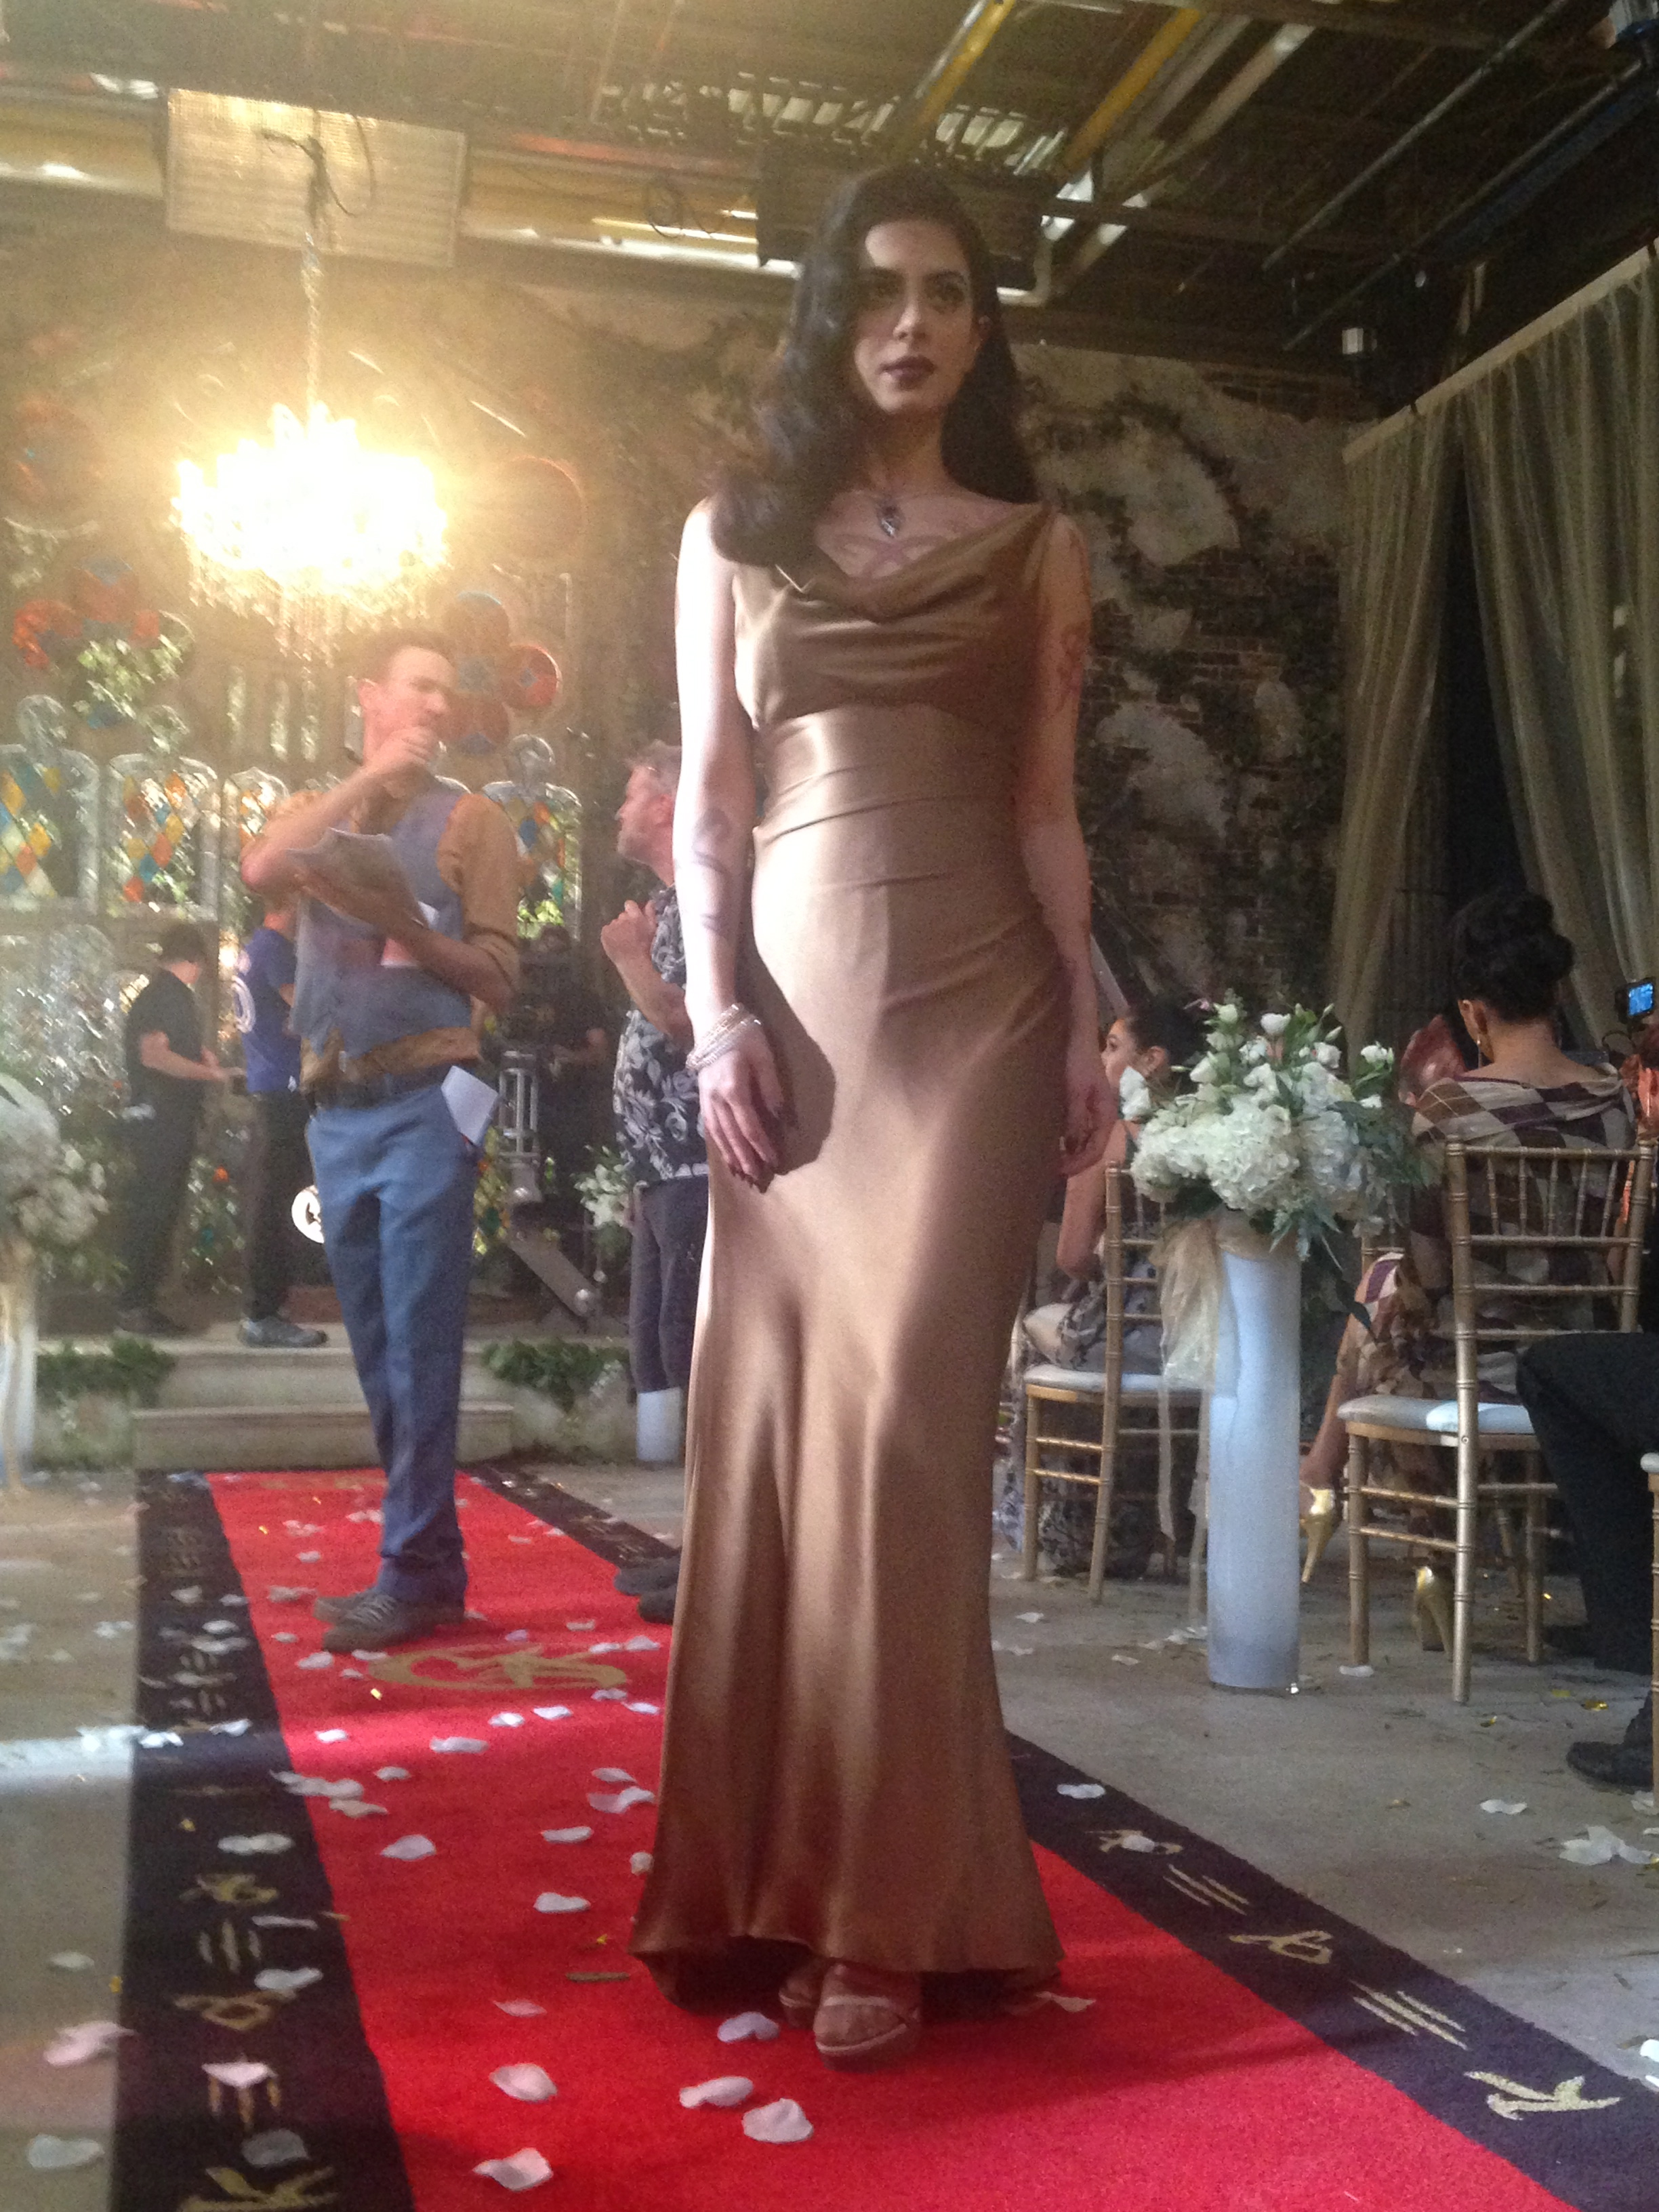 Shadowhunters - Amazing Behind The Scenes Pics From Episode 12's Wedding! - 1003